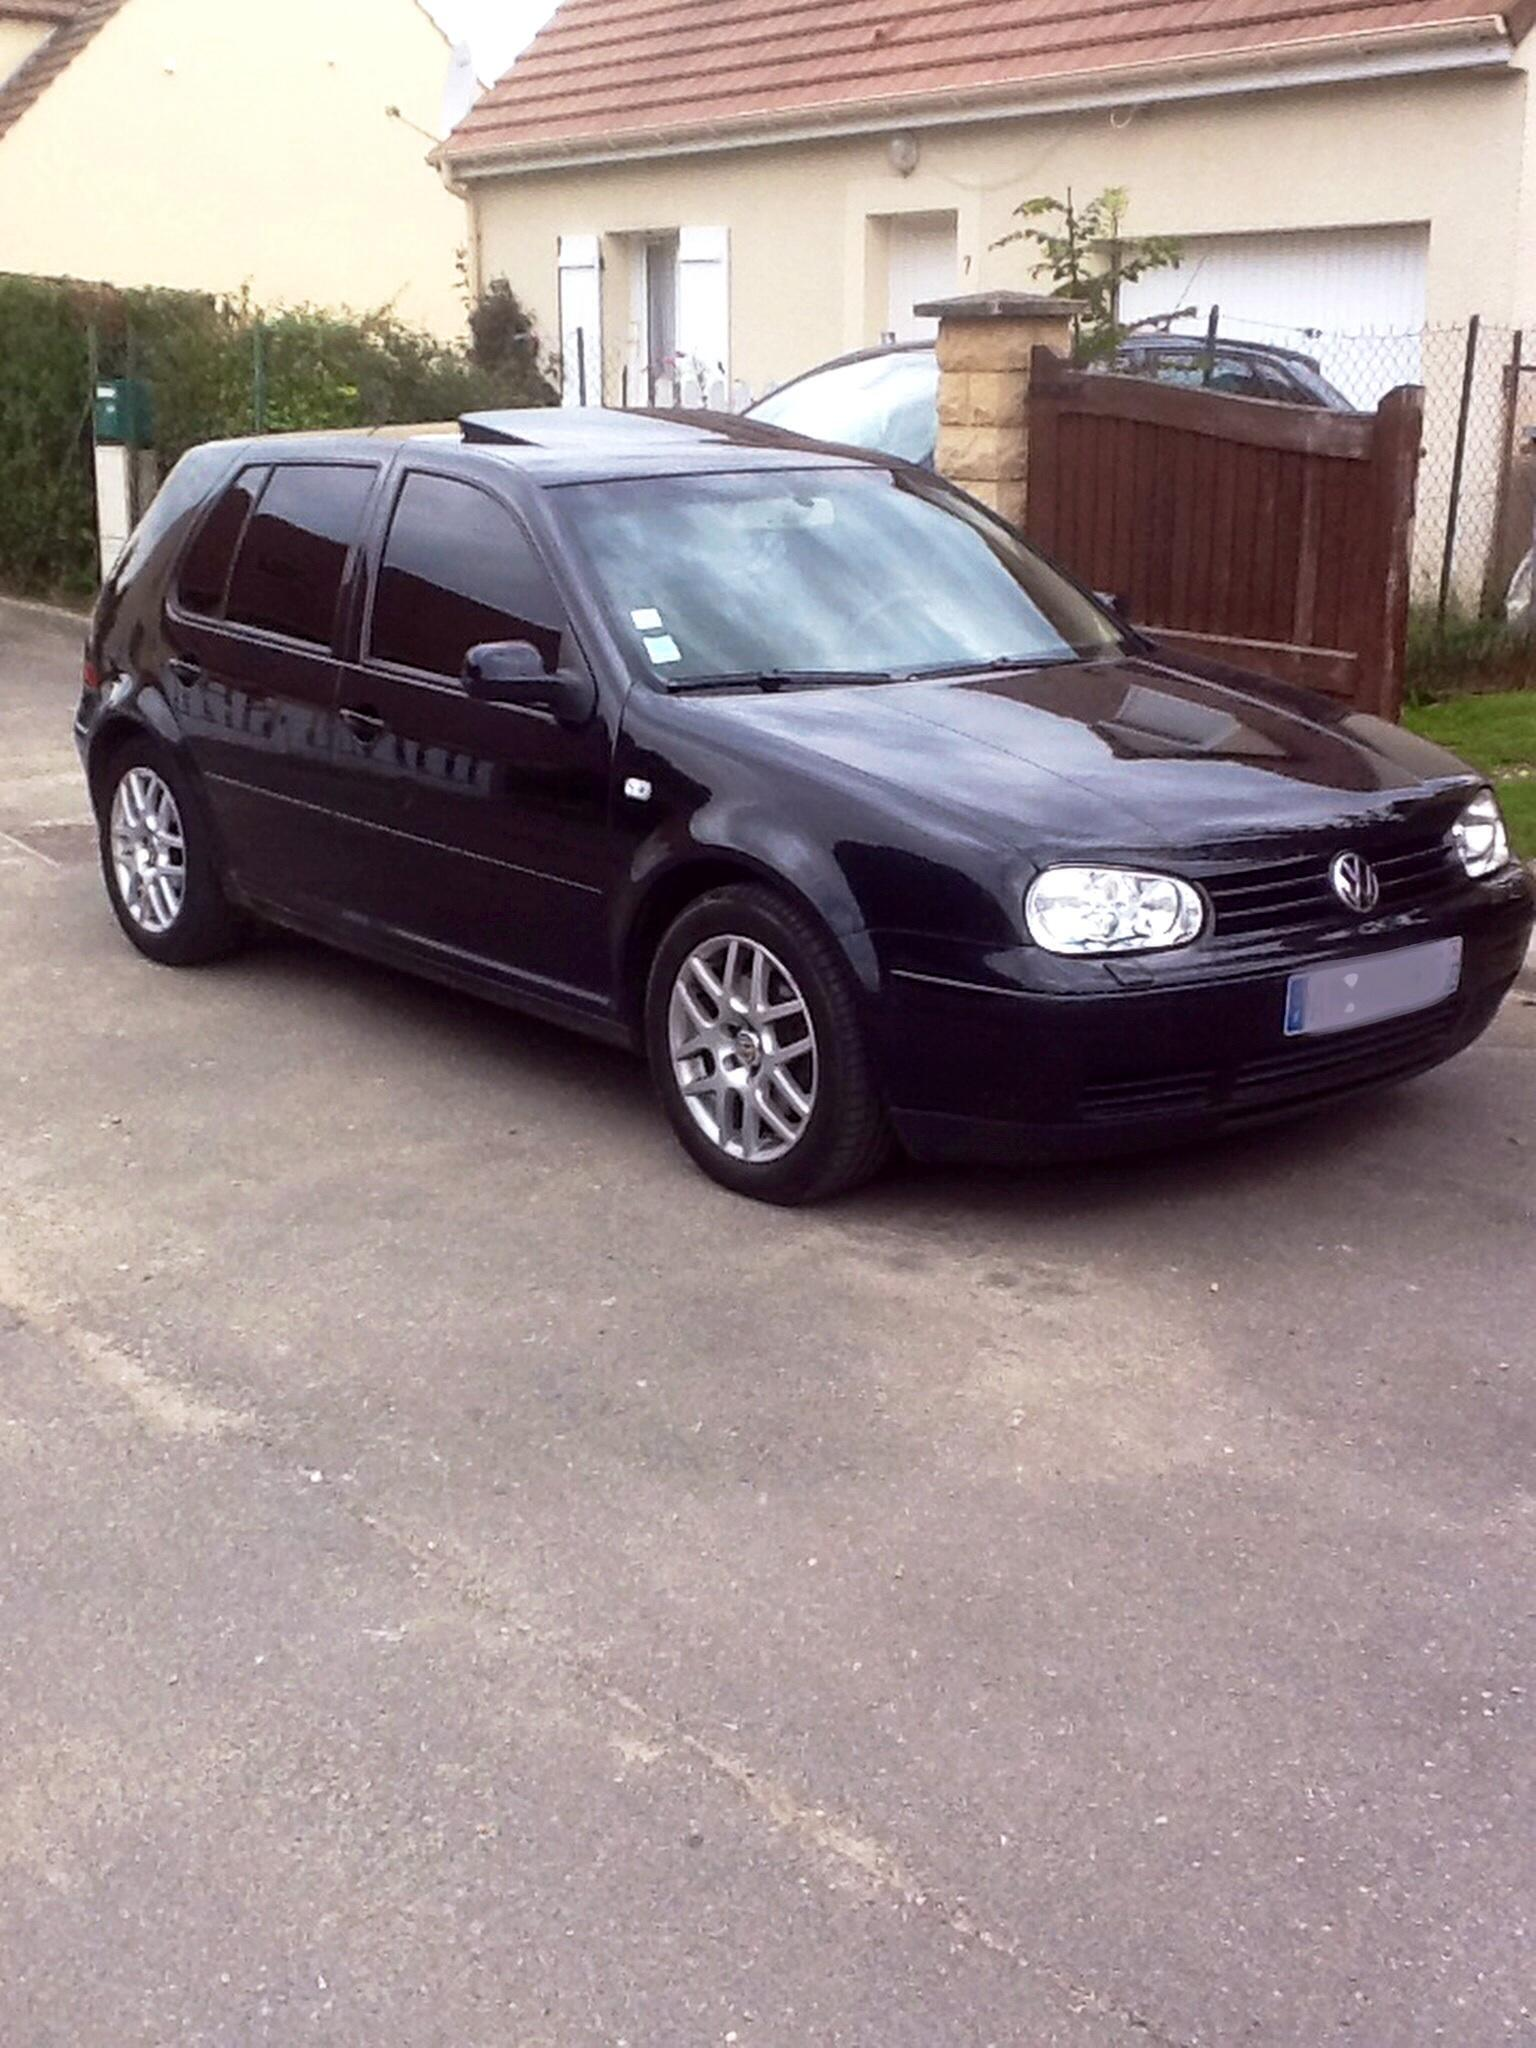 vw golf iv tdi 130 carat 2003 garage des golf iv tdi 130 forum volkswagen golf iv. Black Bedroom Furniture Sets. Home Design Ideas